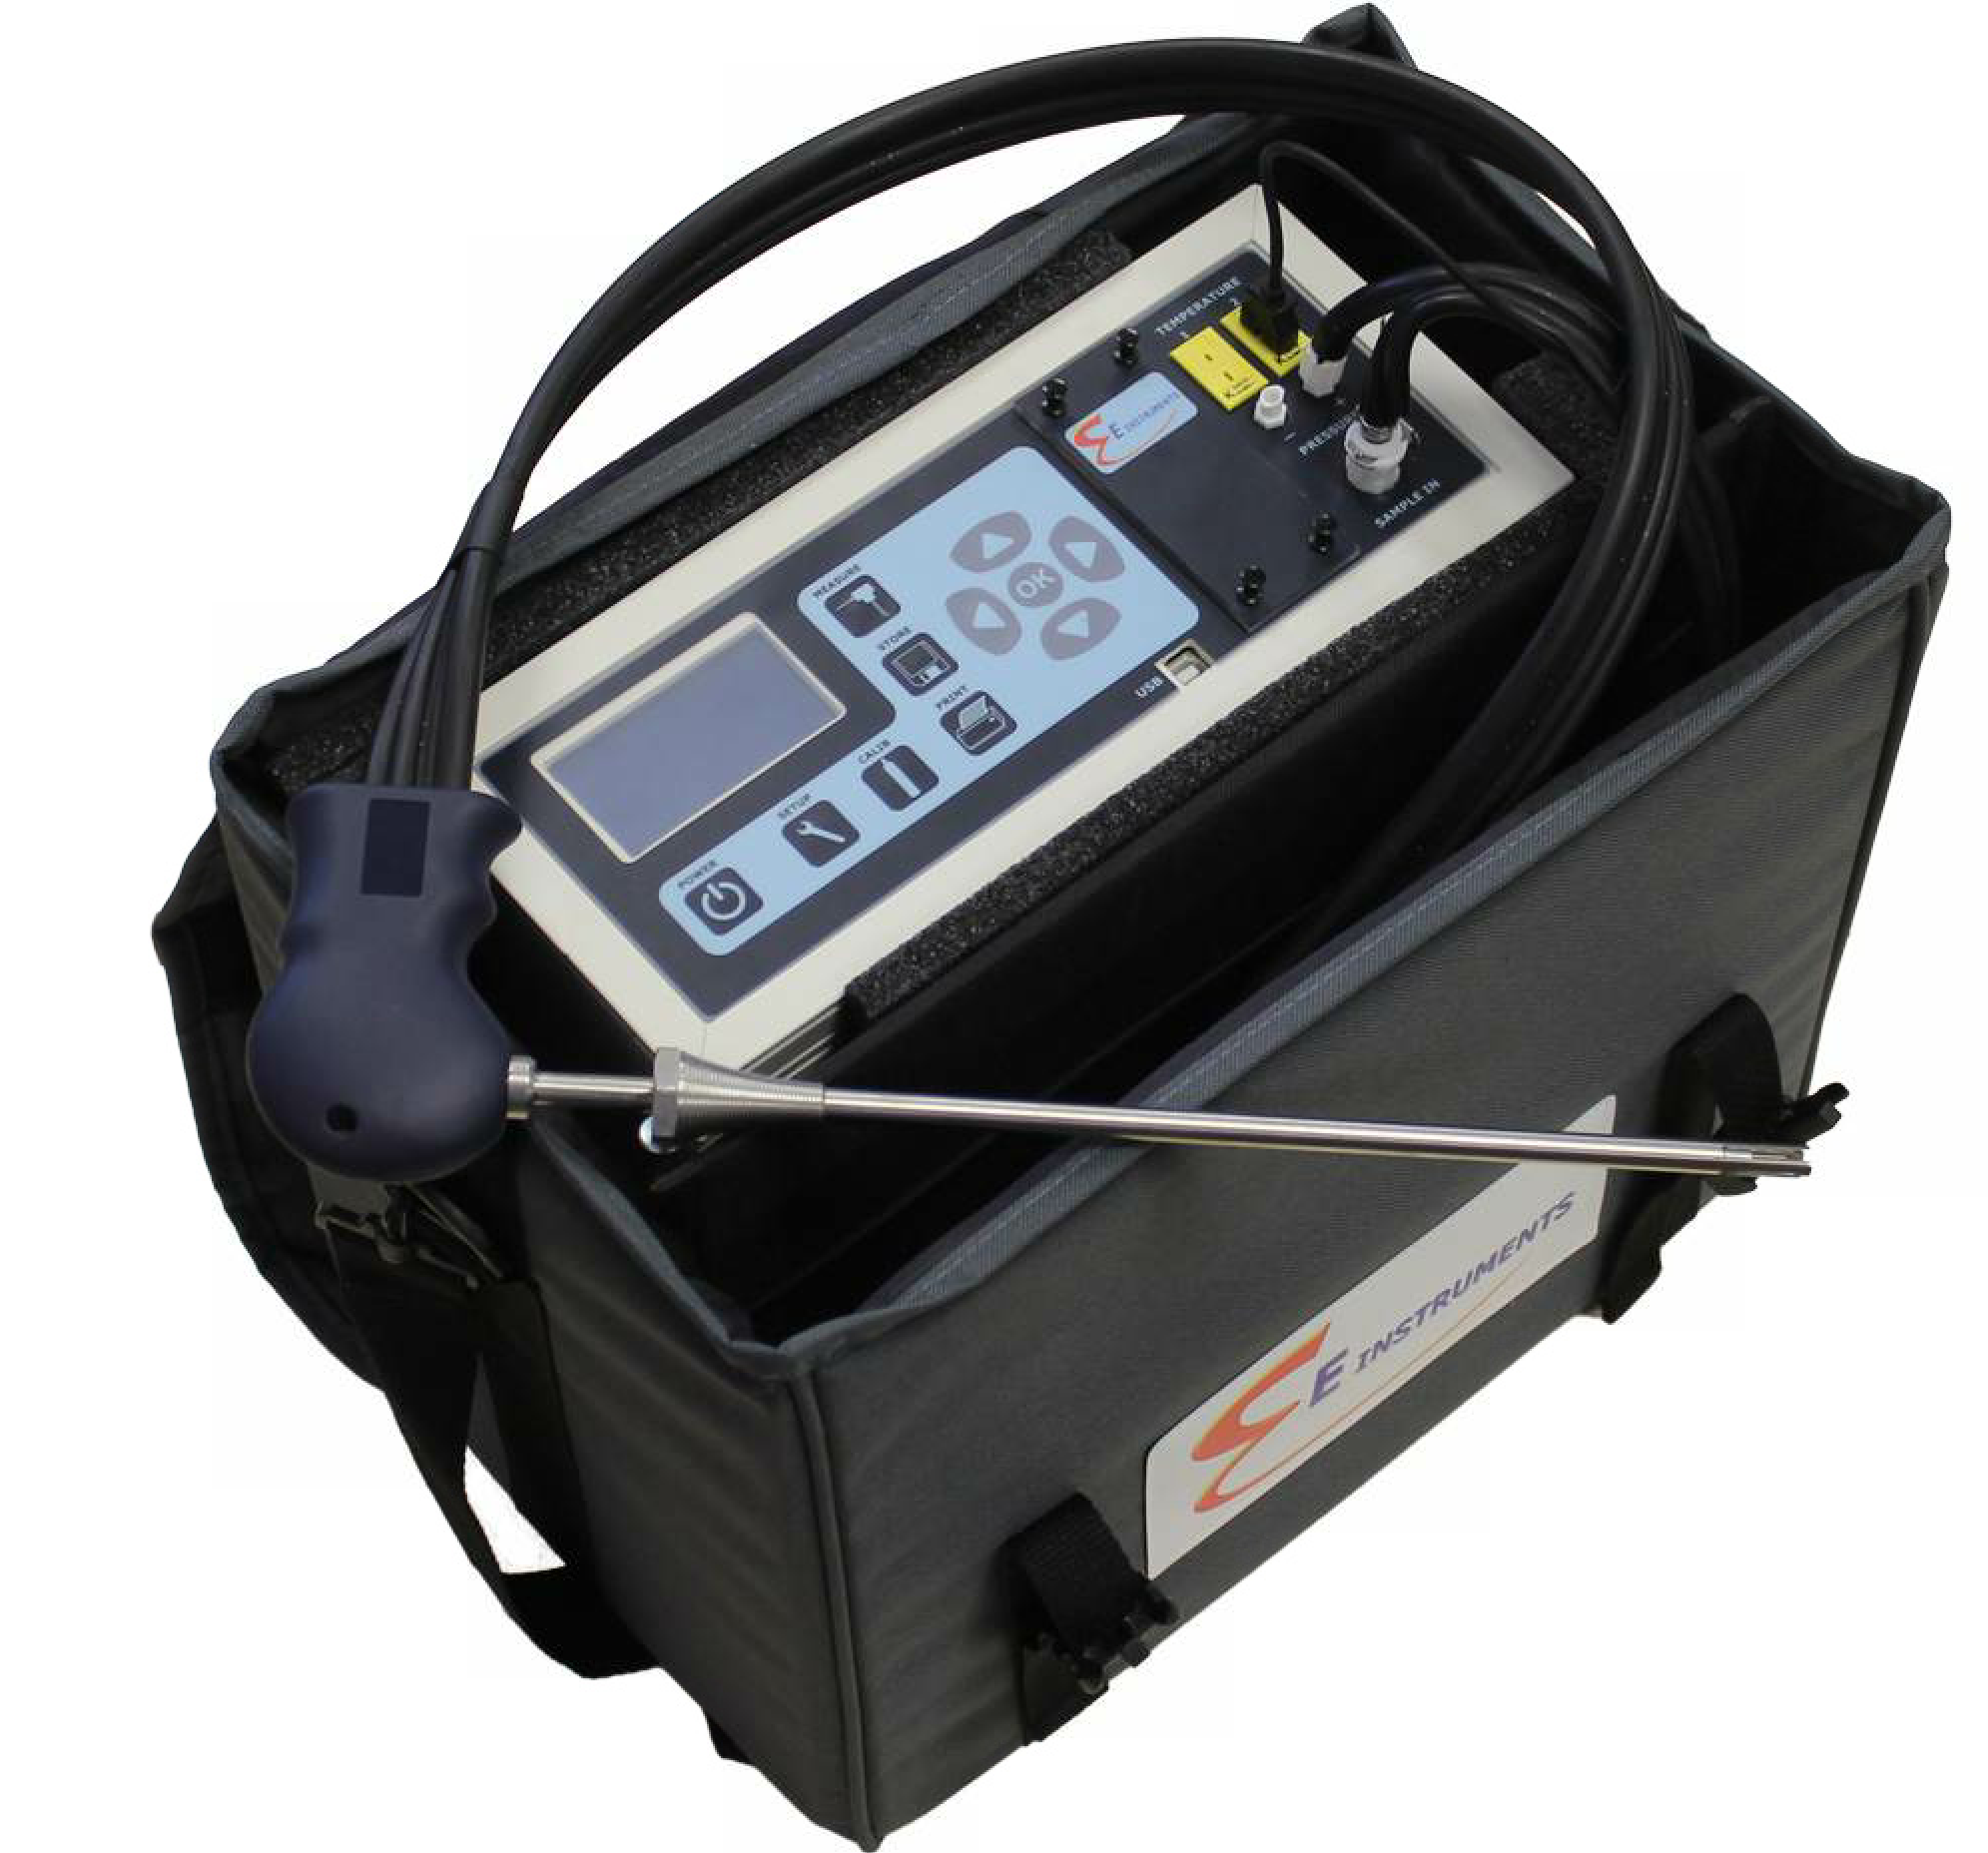 The new E8500 Plus portable emissions analyzer includes an internal thermoelectric chiller with automatic condensate removal.